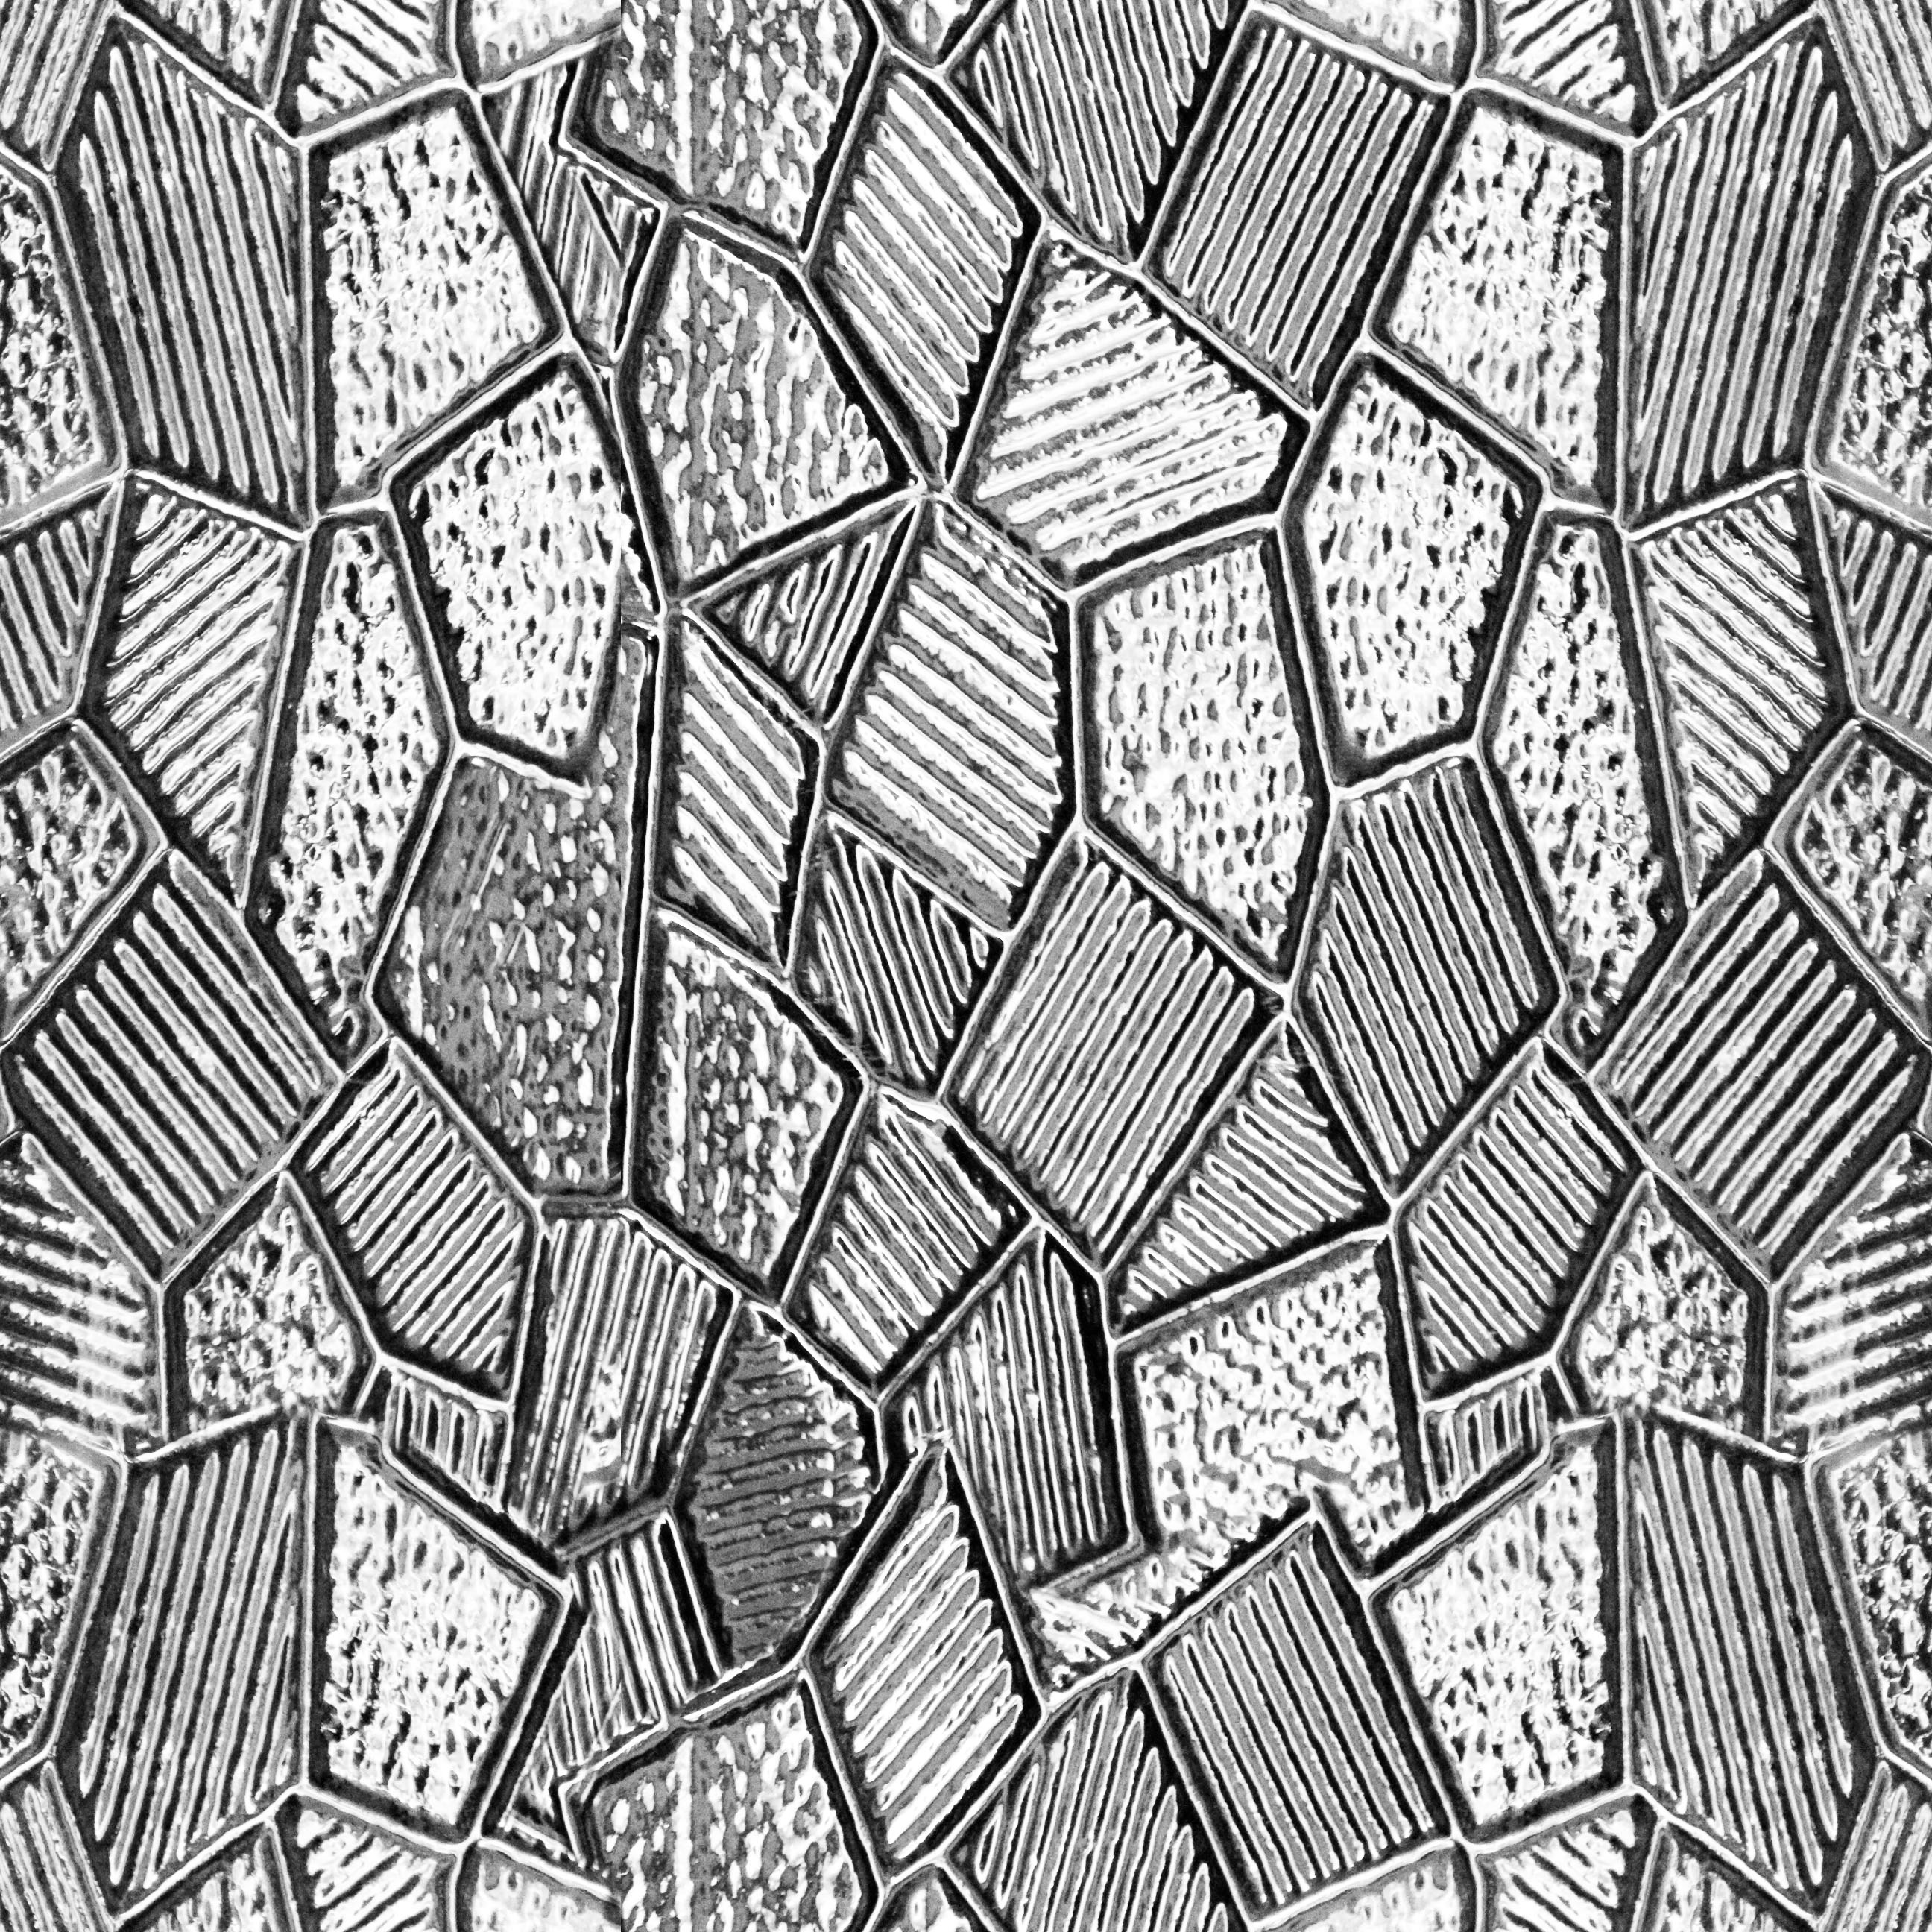 Textures Drawing At Getdrawings Com Free For Personal